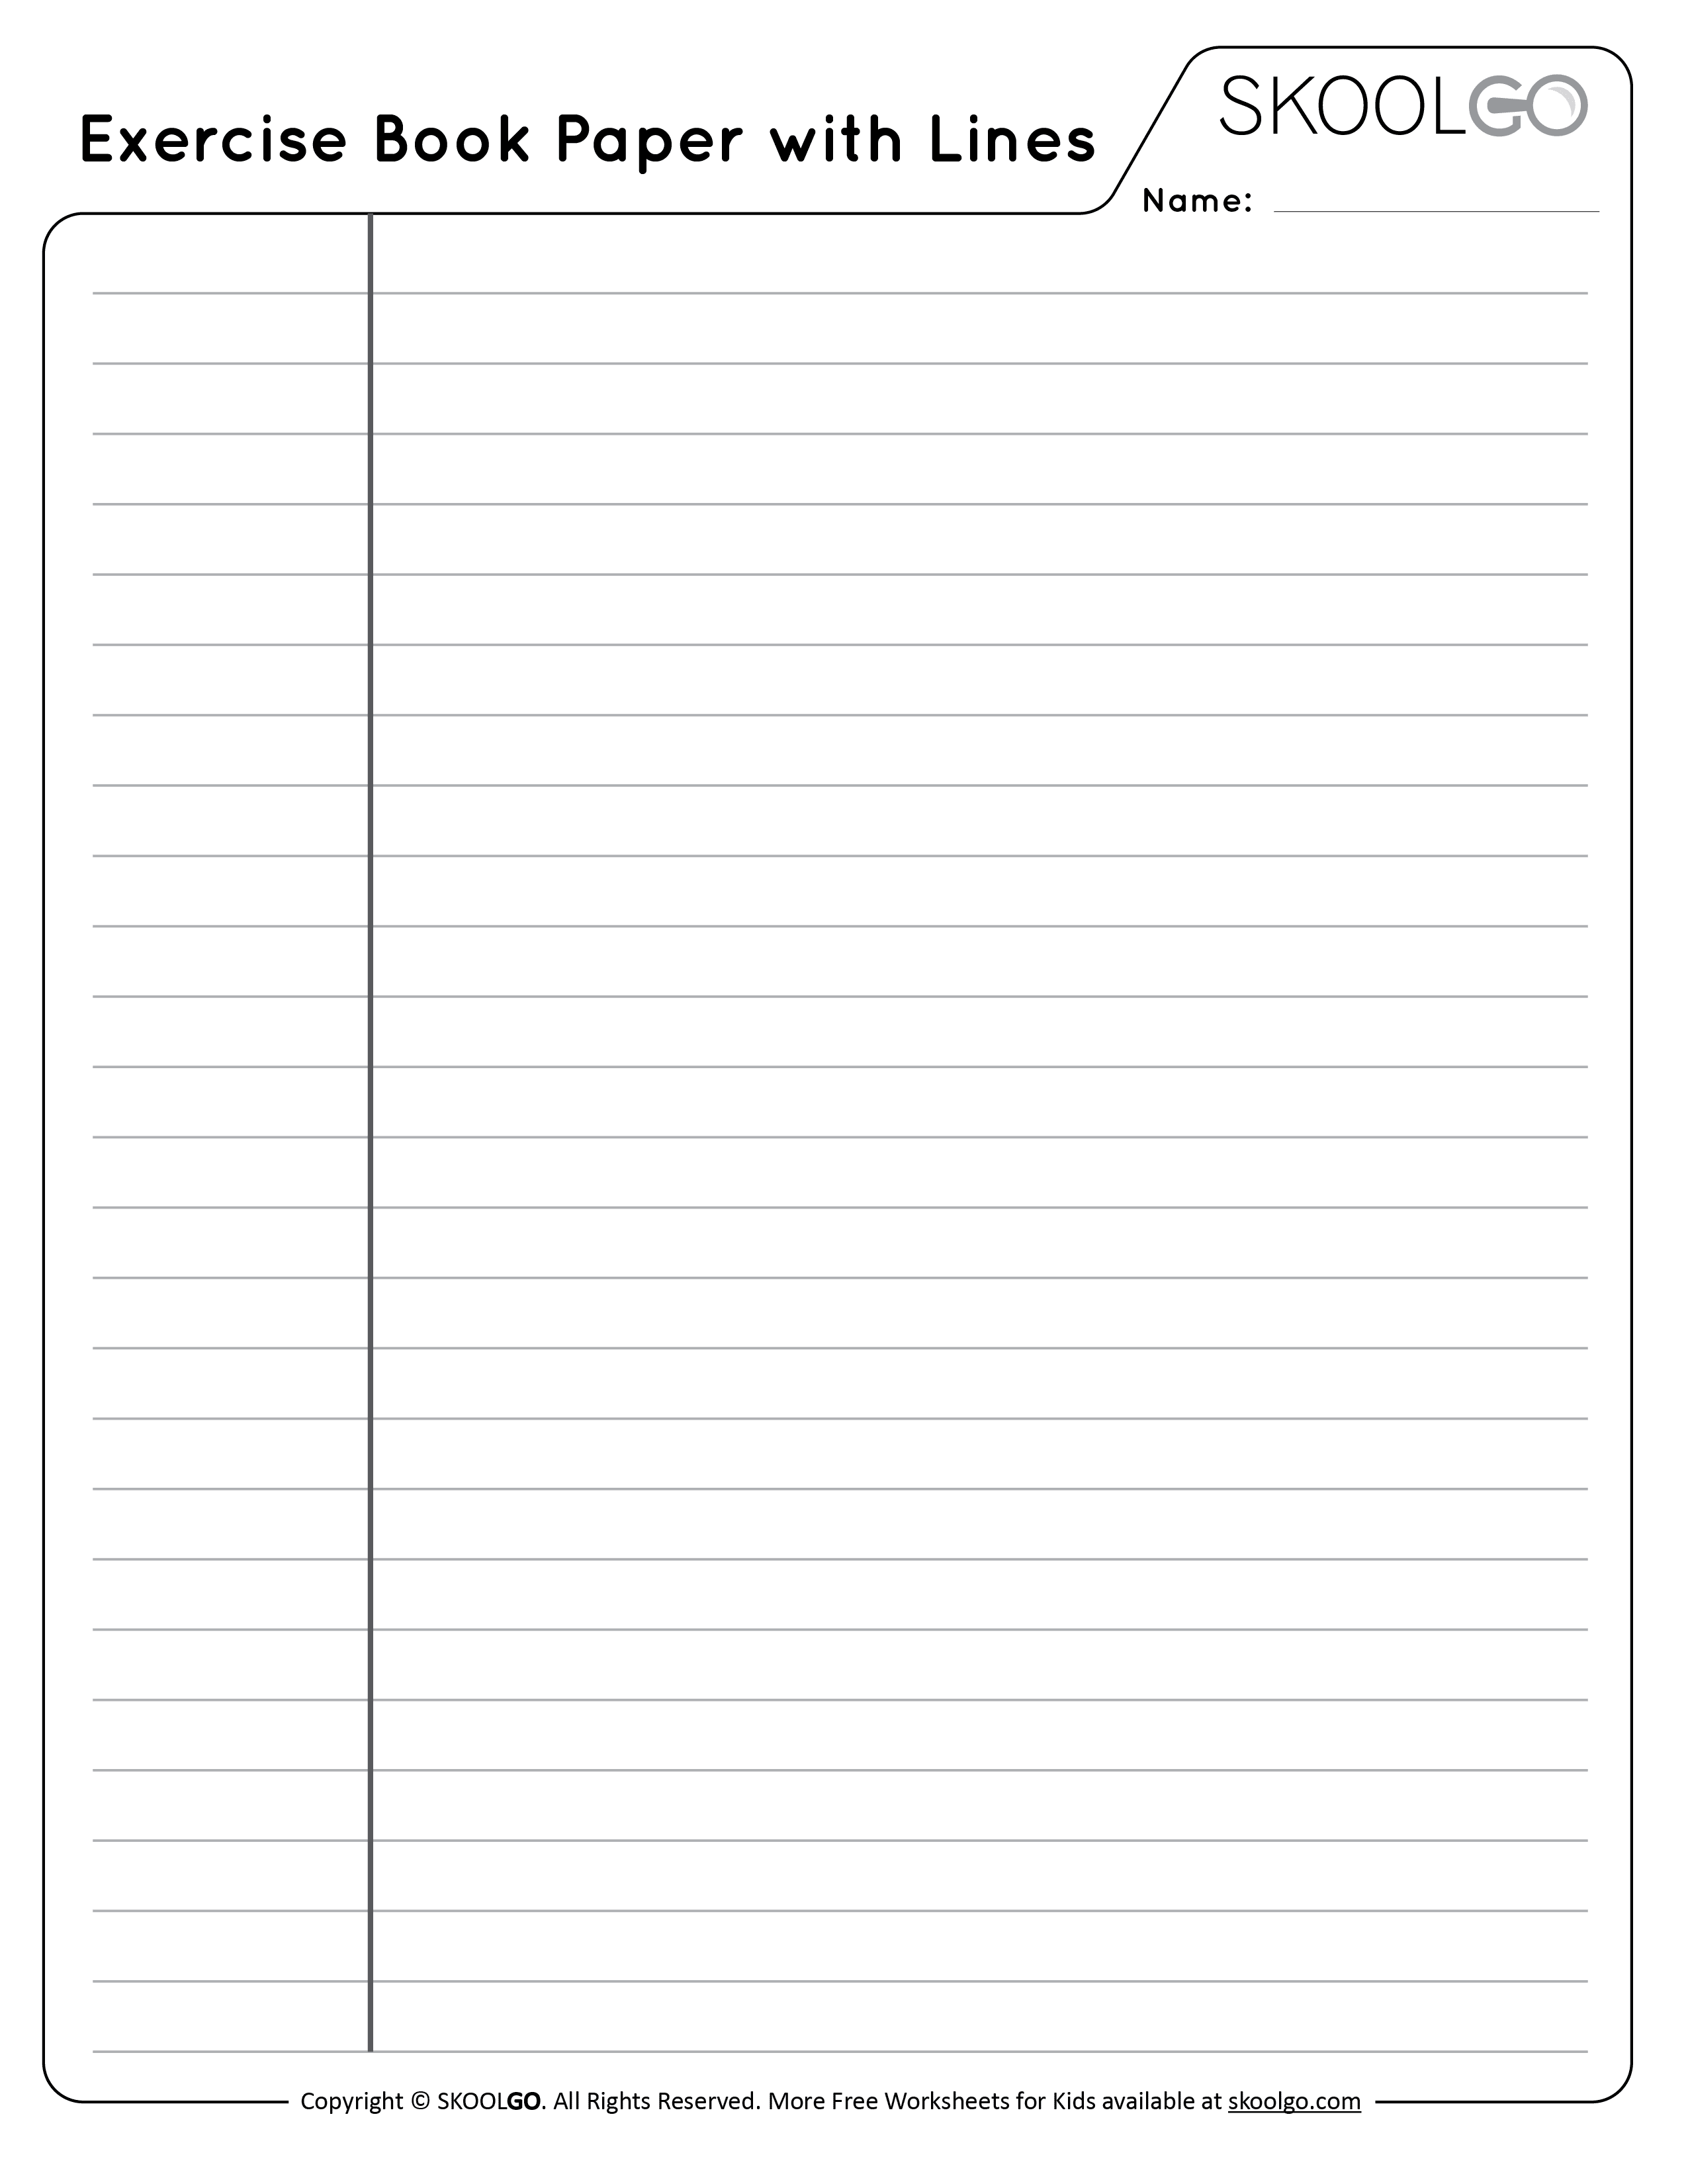 Exercise Book Paper with Lines - Free Black and White Worksheet for Kids